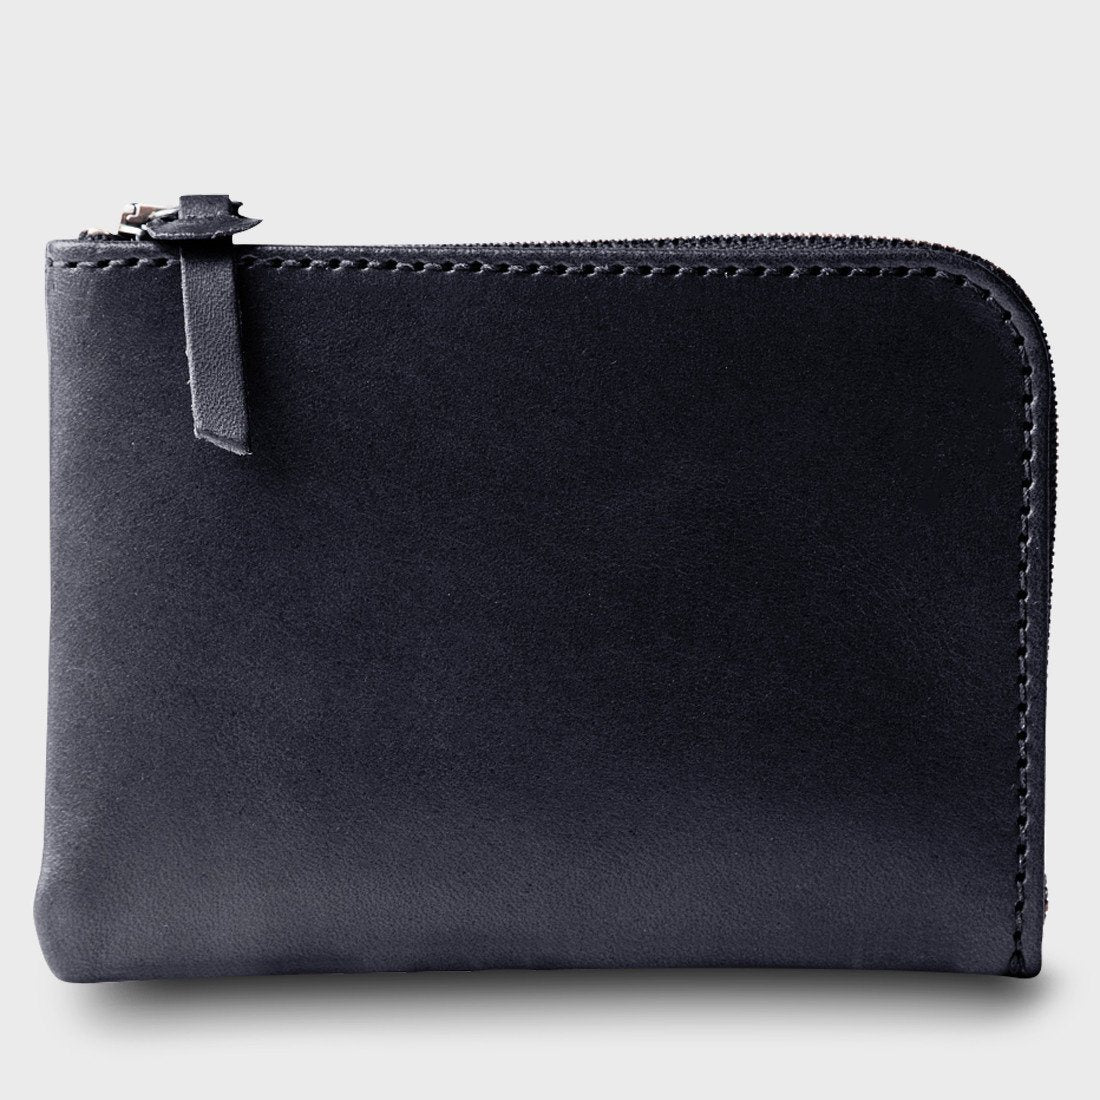 Tanner Goods Universal Zip Wallet Black